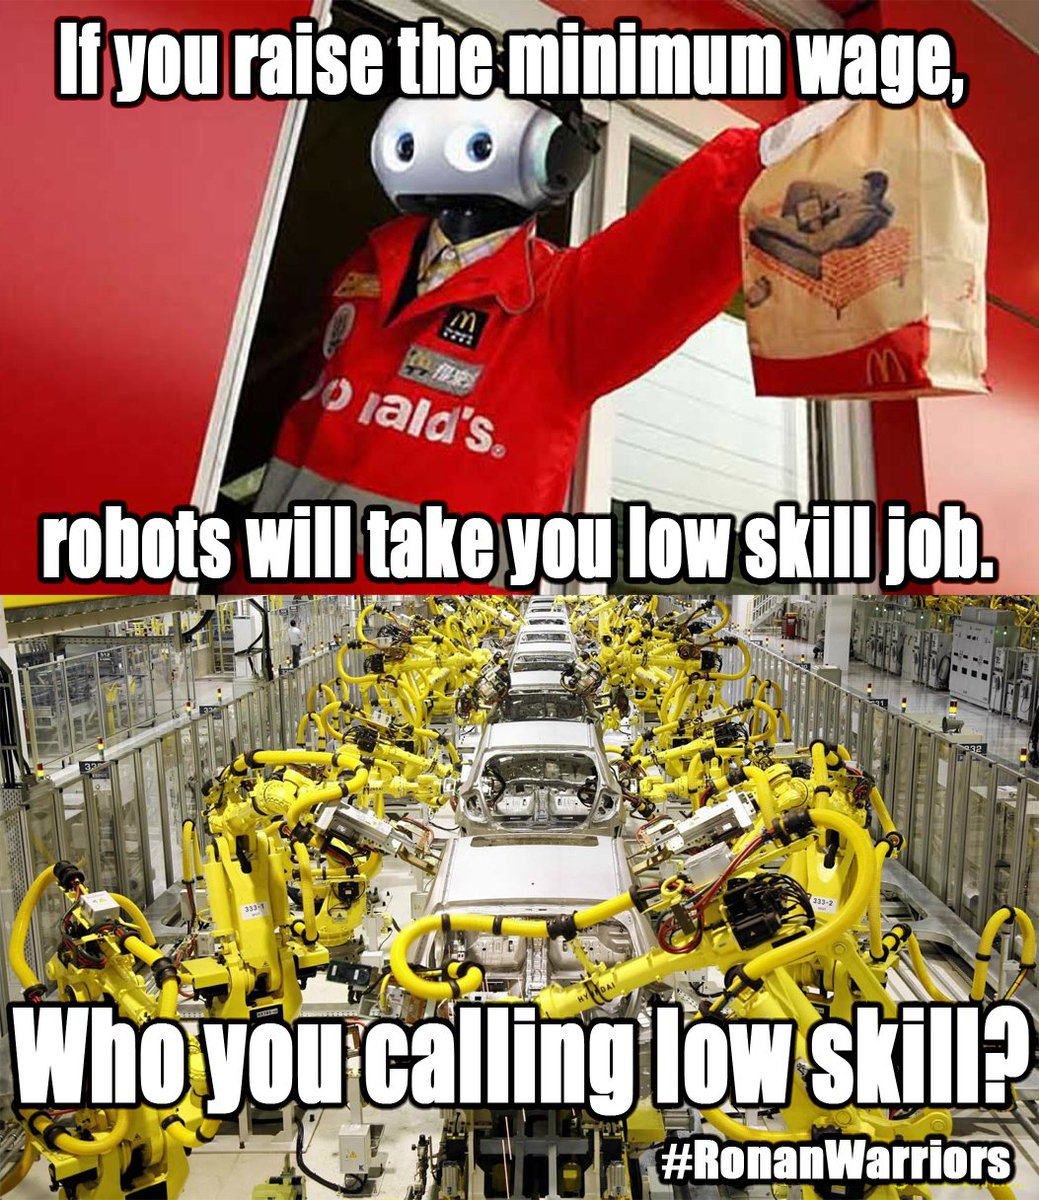 bluestatebandit on the argument against fightfor bluestatebandit on the argument against fightfor15 robots will take your low skill jobs but they already took all the high skill jobs